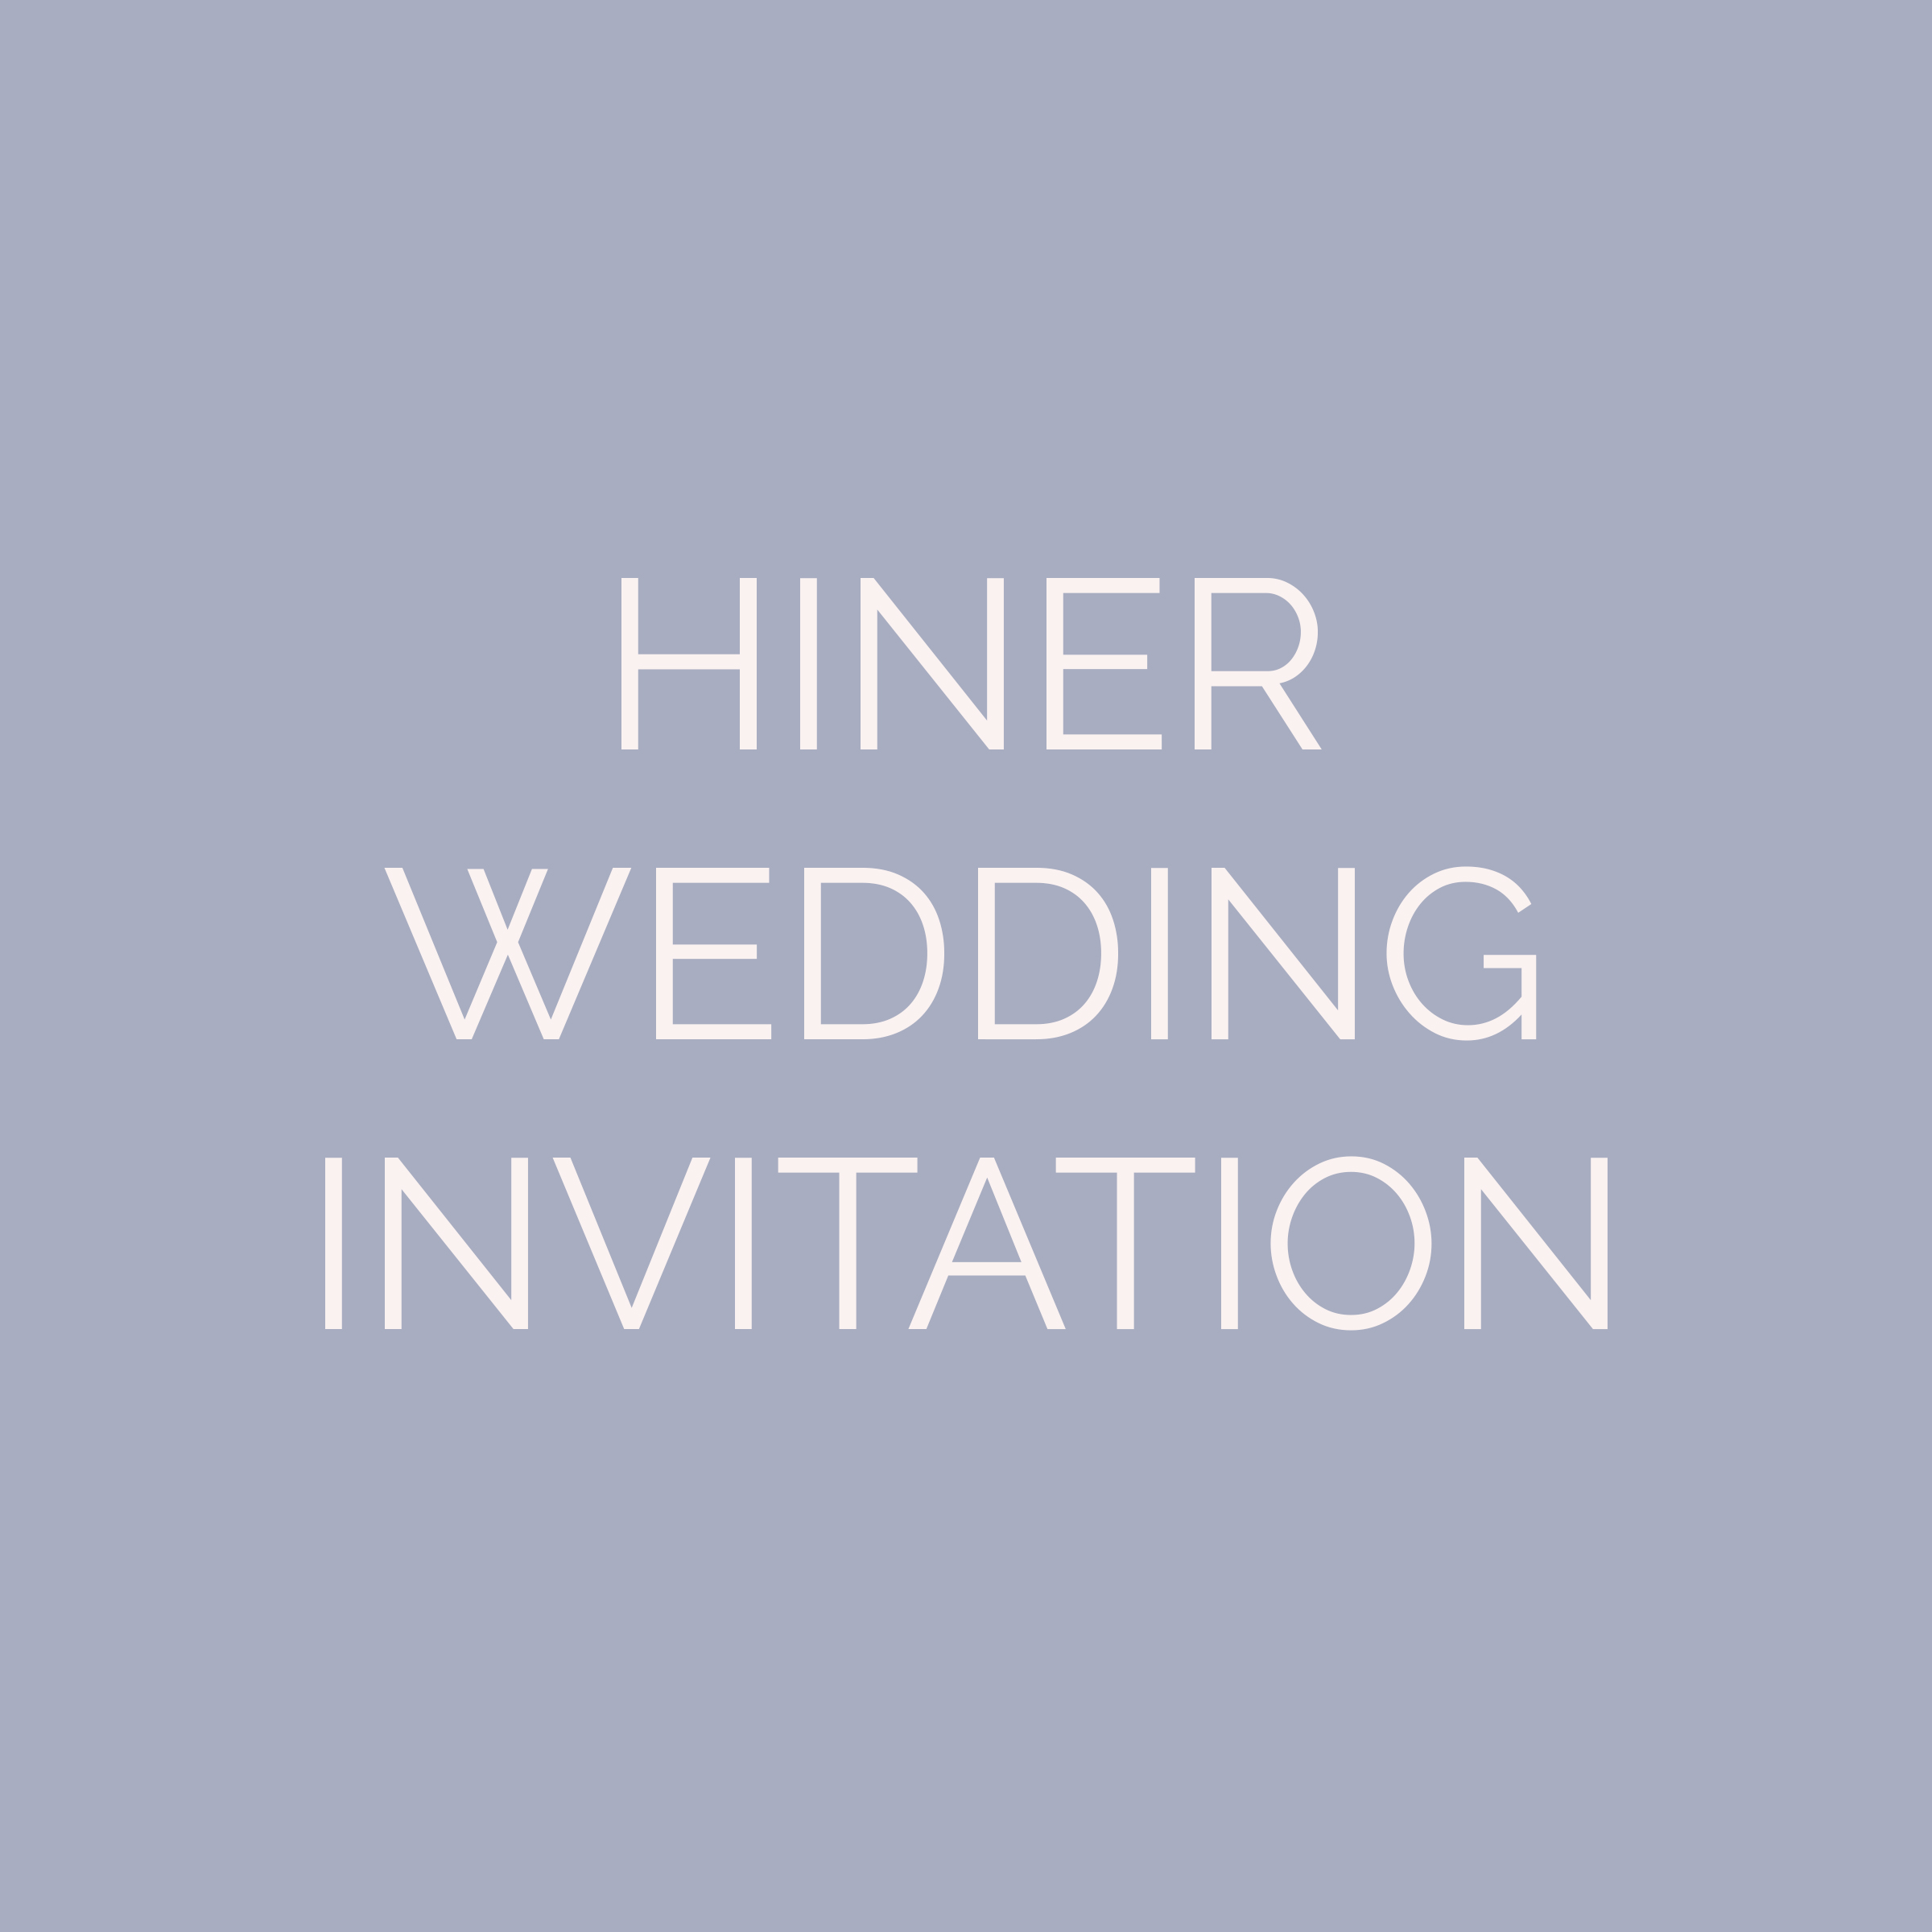 Harder Wedding Invitation.jpg